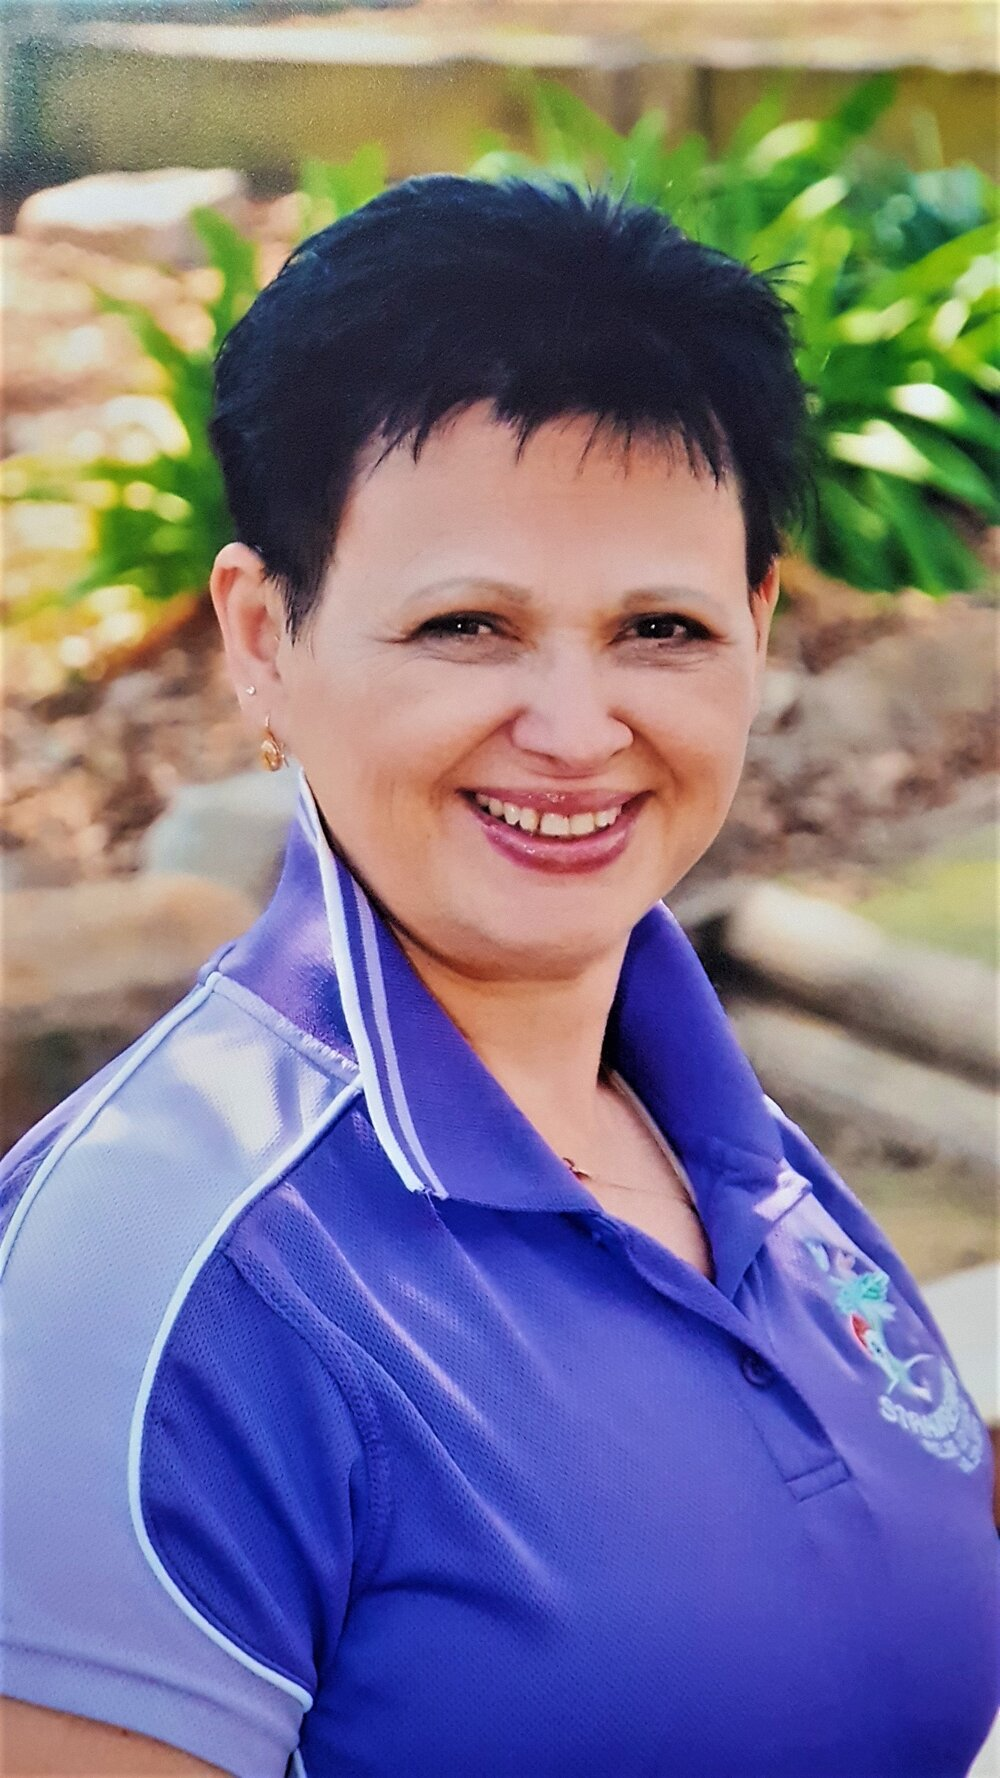 ELENA KELLY Approved Provider  Bachelor in Teaching. Diploma in Early Childhood. 32 years professional experience.